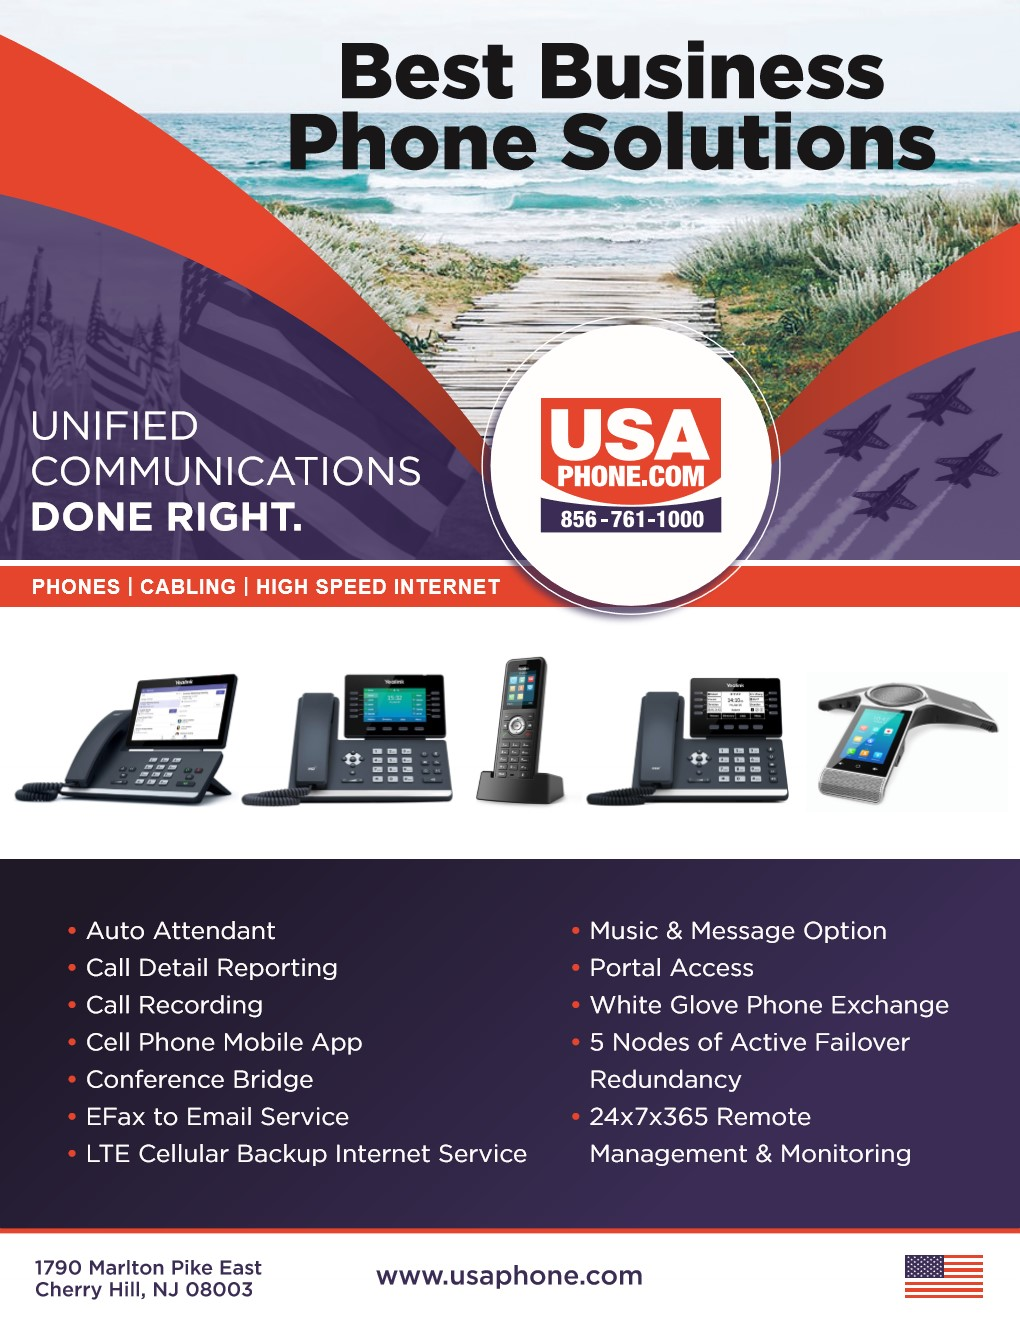 Best Business Phone Solutions